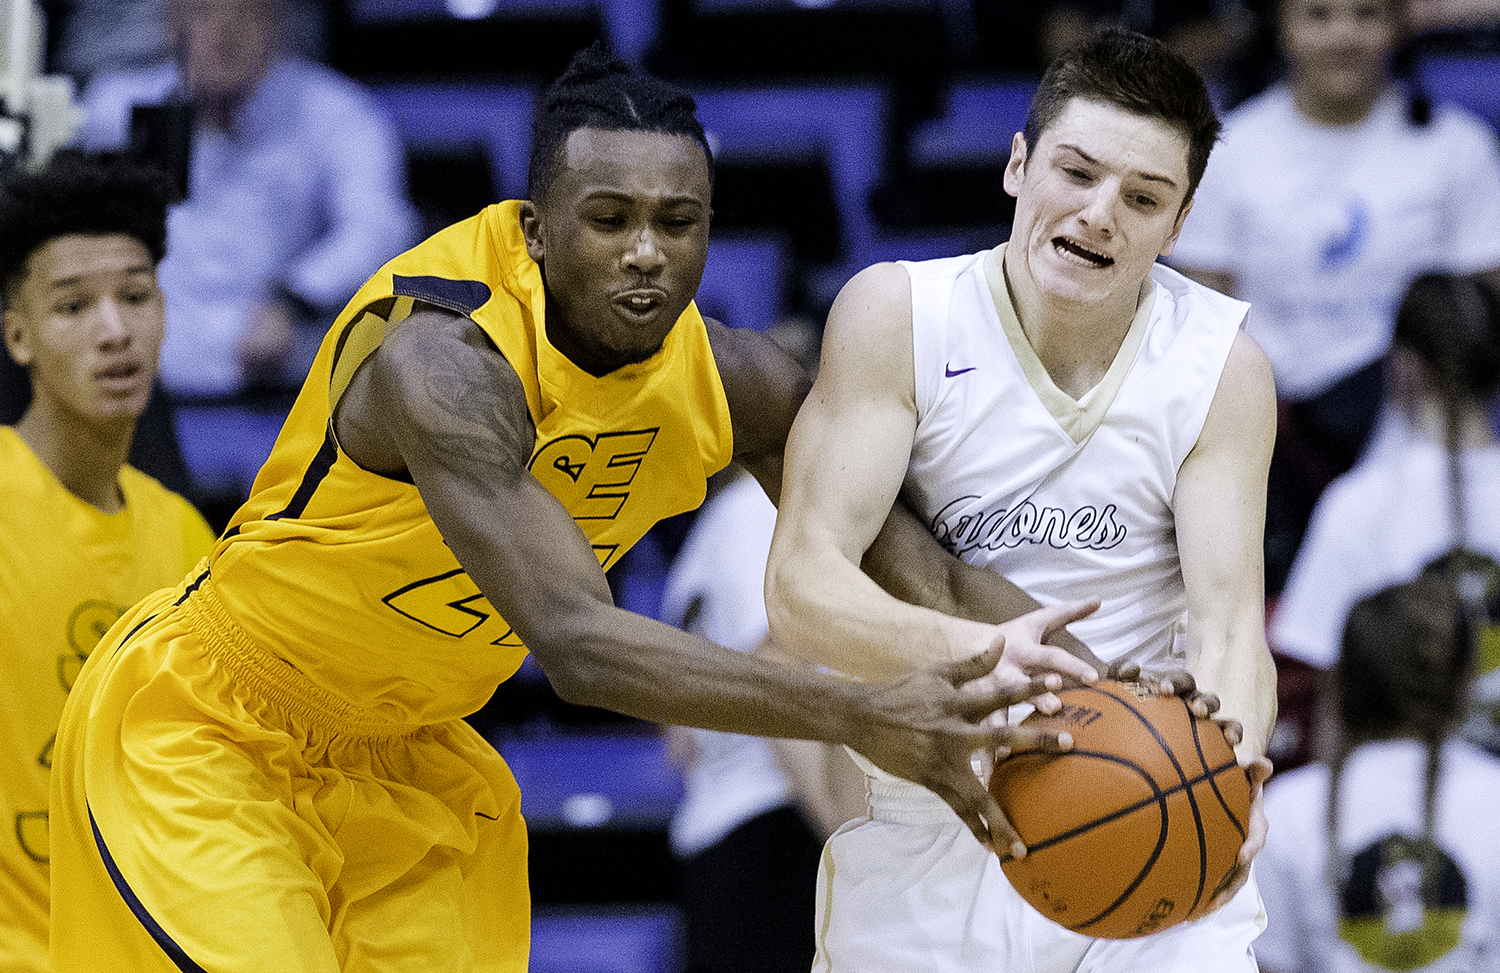 Southeast's Anthony Fairlee and Sacred Heart-Griffin's Evan Warrington fight for a rebound during the Boys City Tournament at the Bank of Springfield Center Thursday, Jan. 18, 2018. [Ted Schurter/The State Journal-Register]